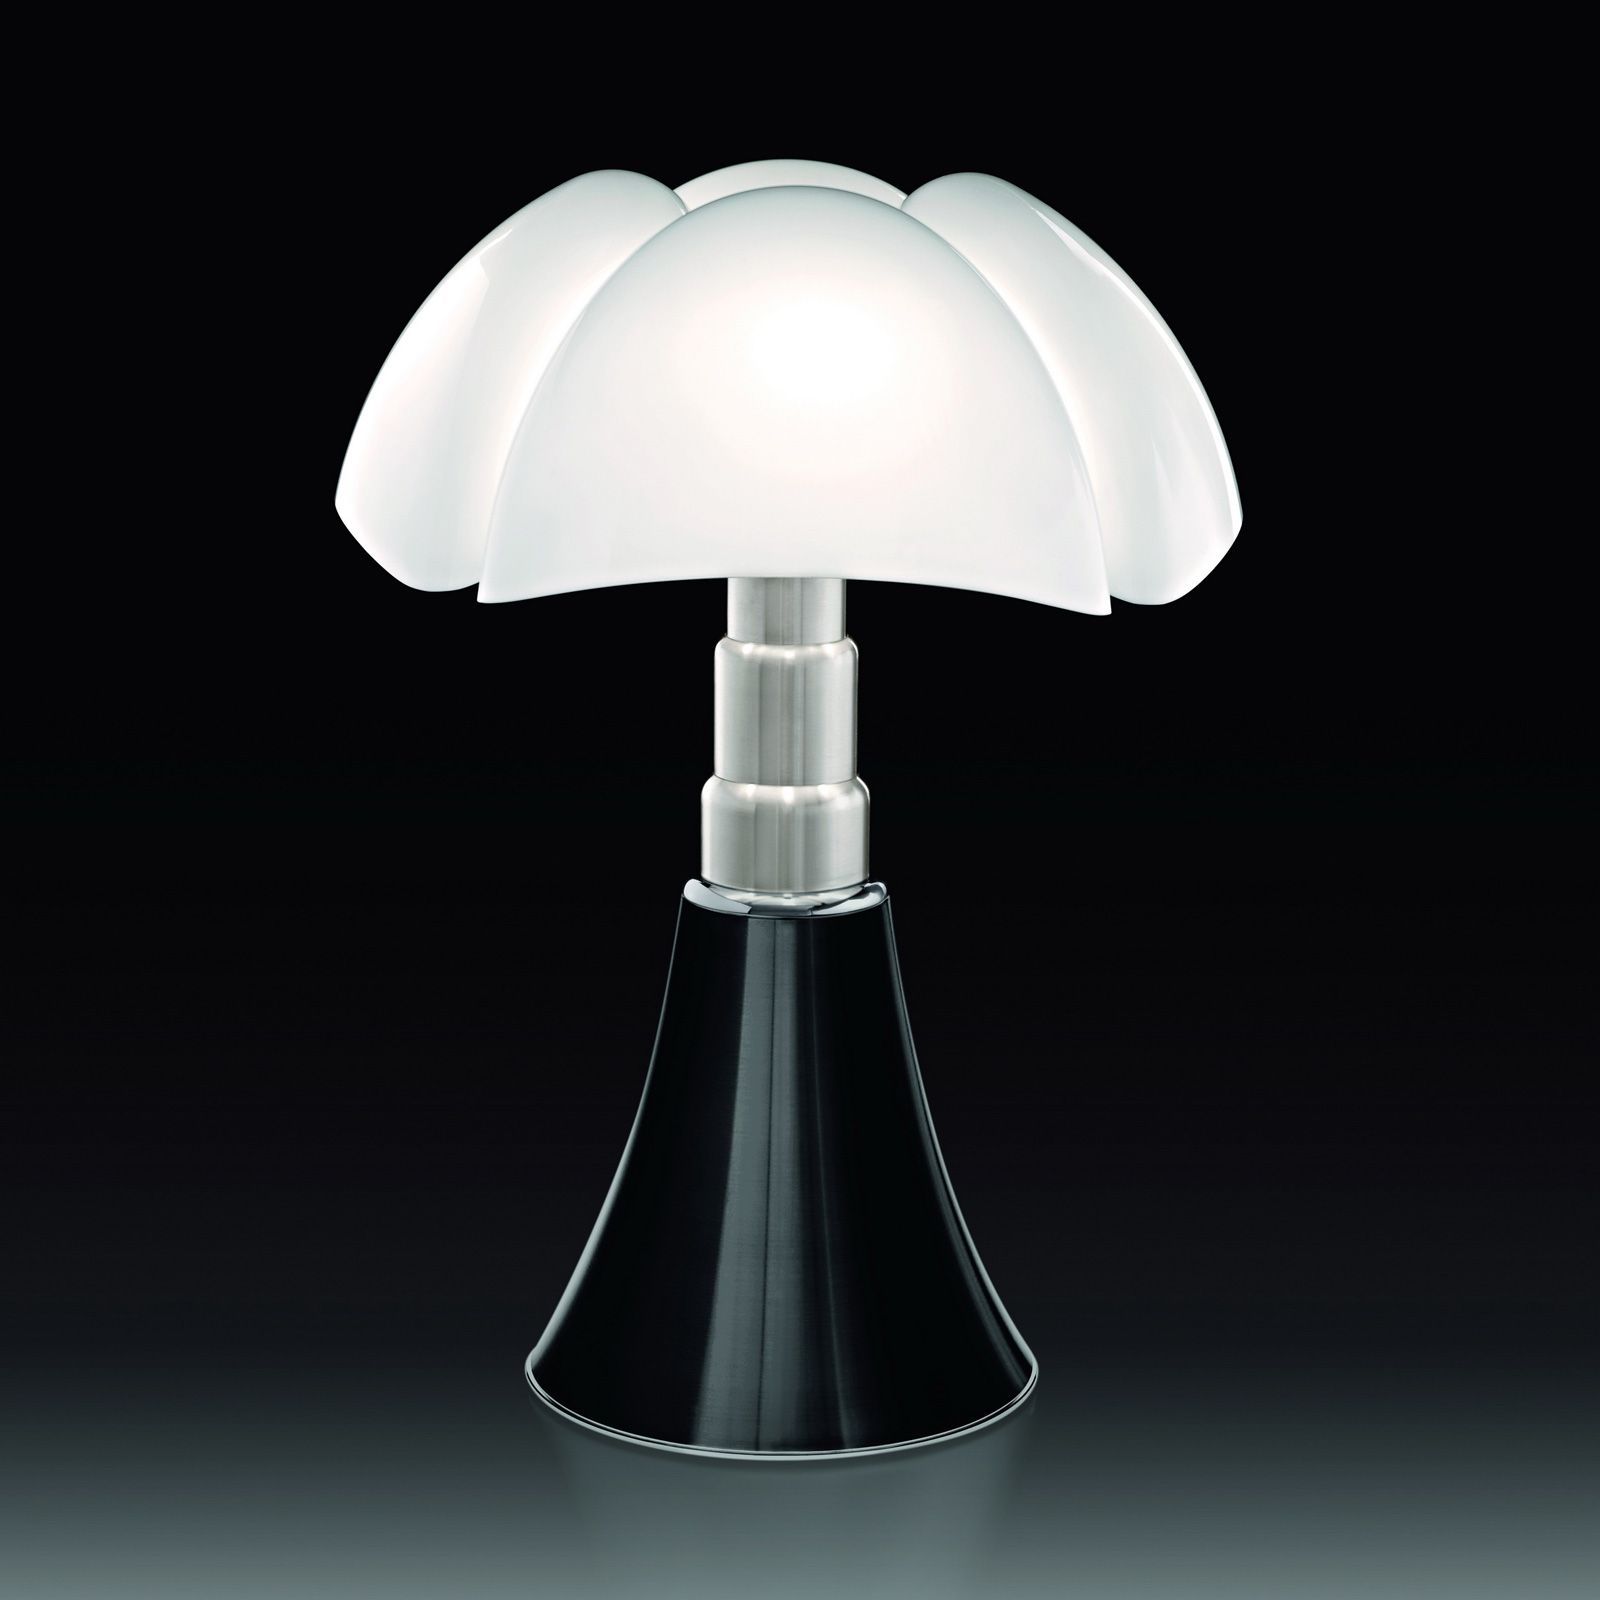 Table Or Standing Lamp With Diffused Light Adjustable Height With